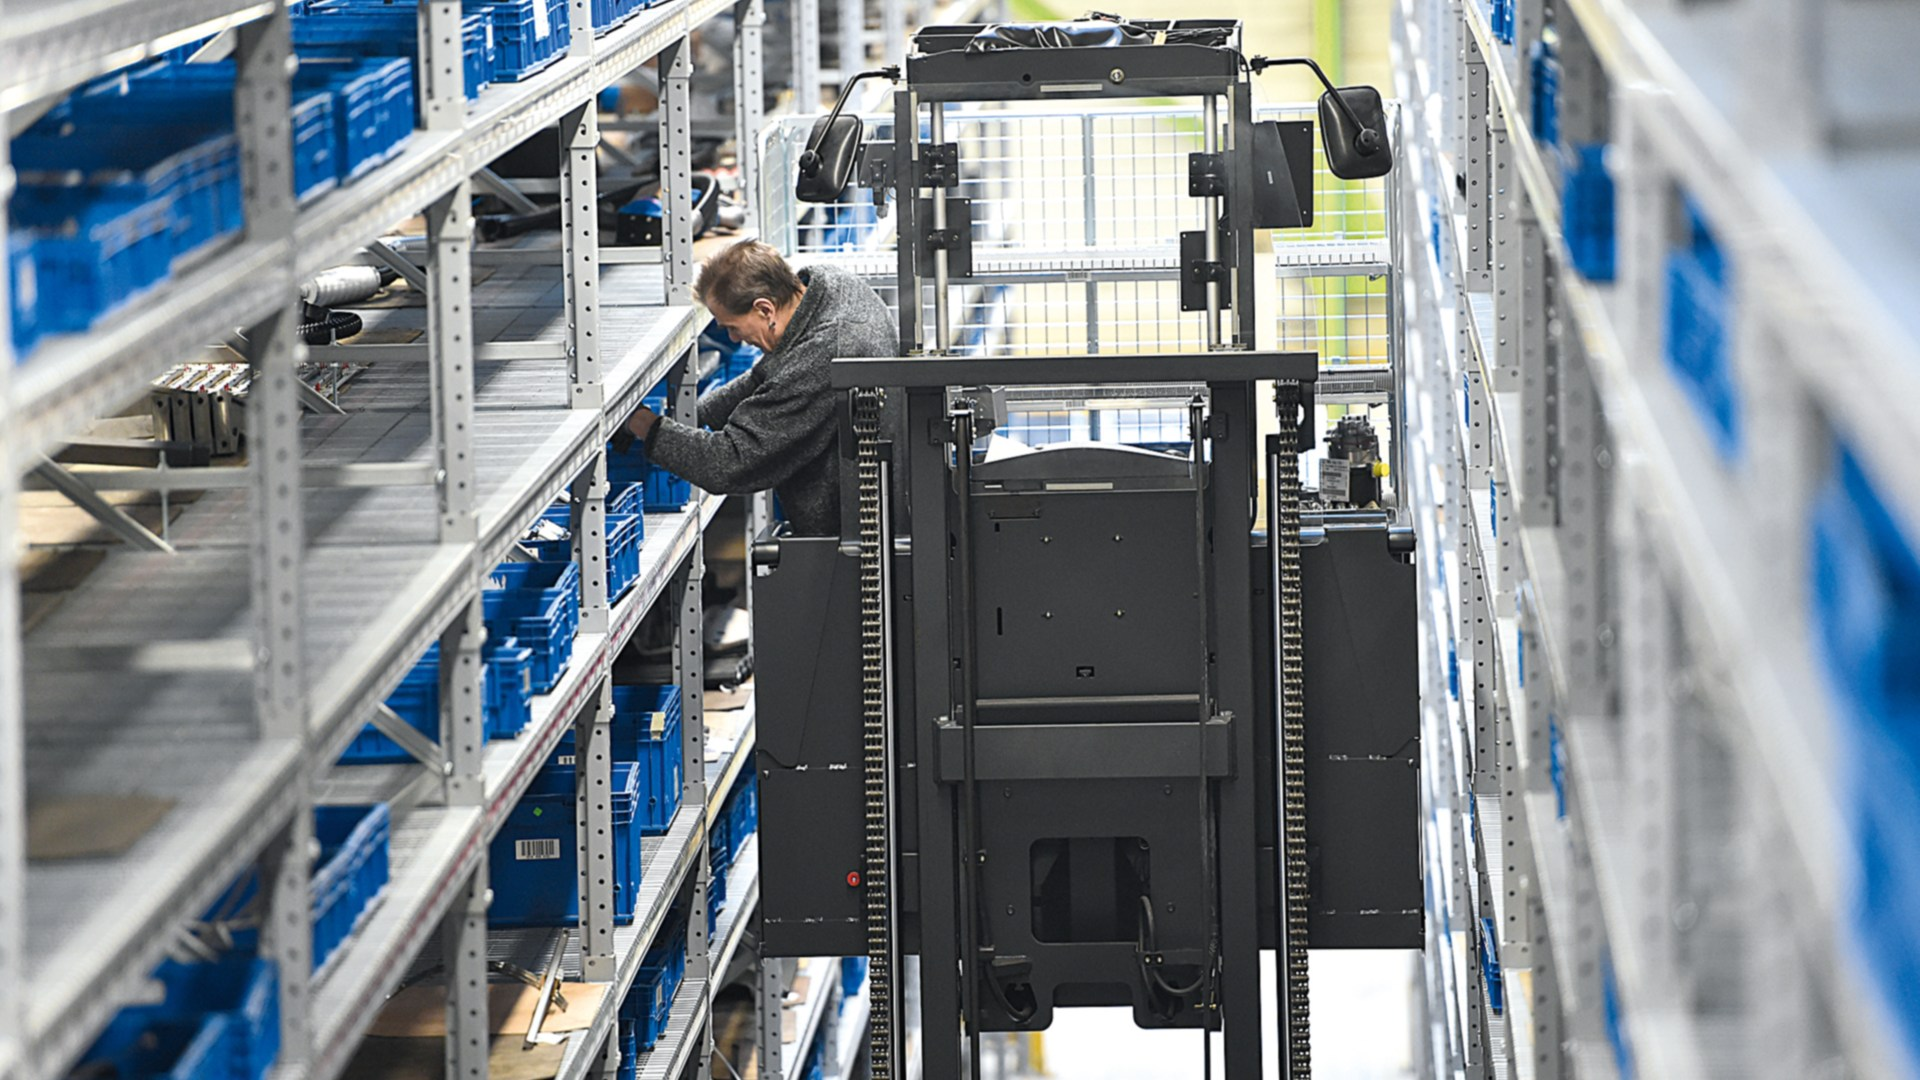 Linde order picker between high racks